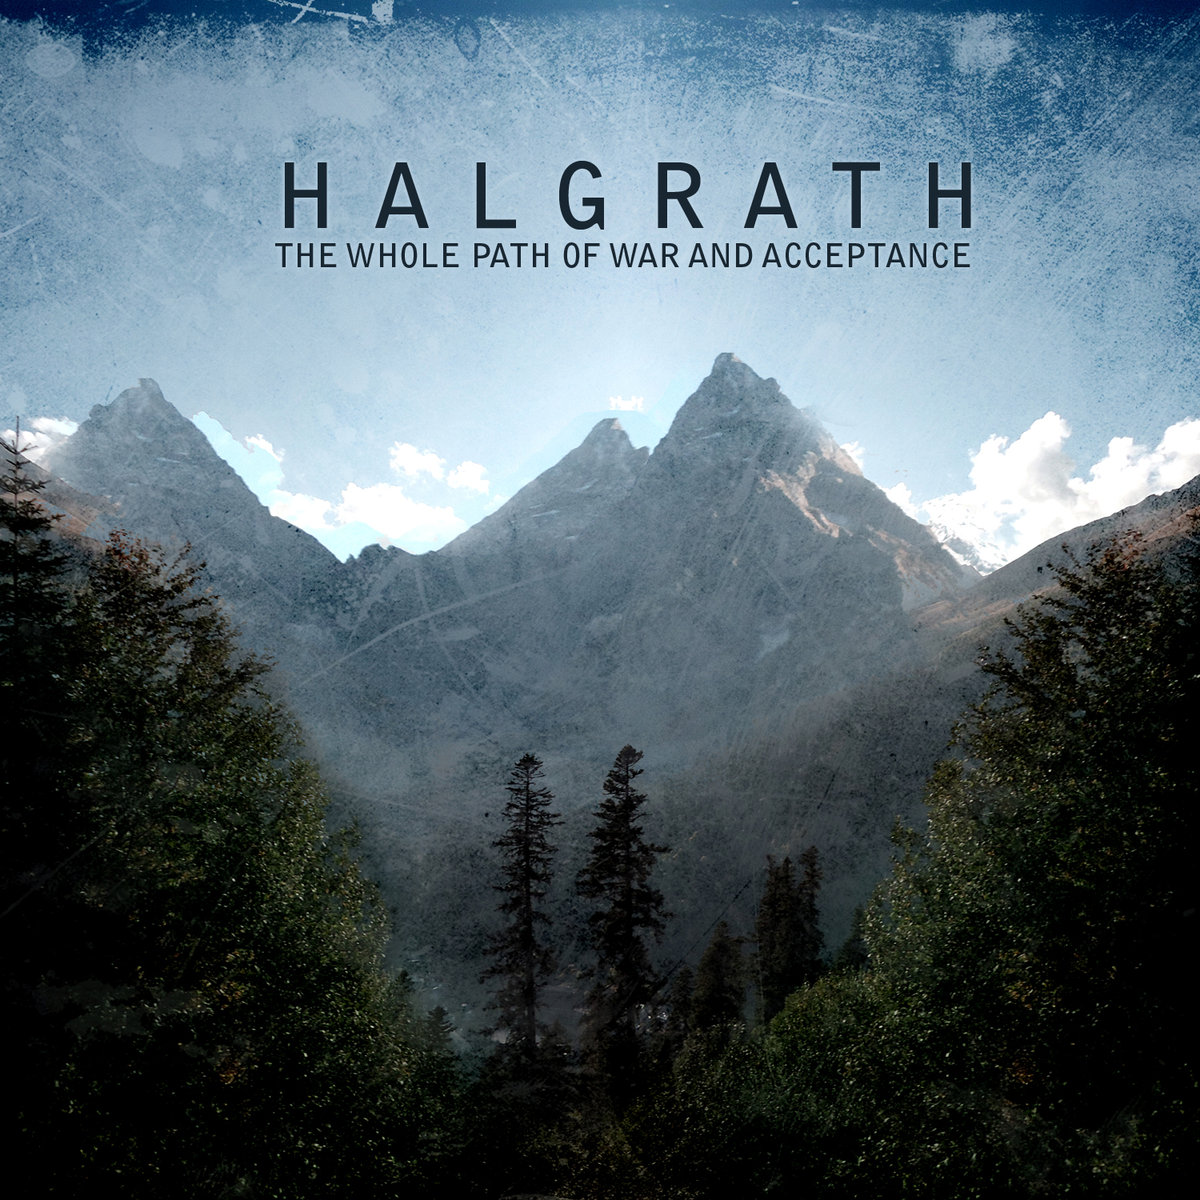 61. Halgrath - The Whole Path Of War And Accceptance